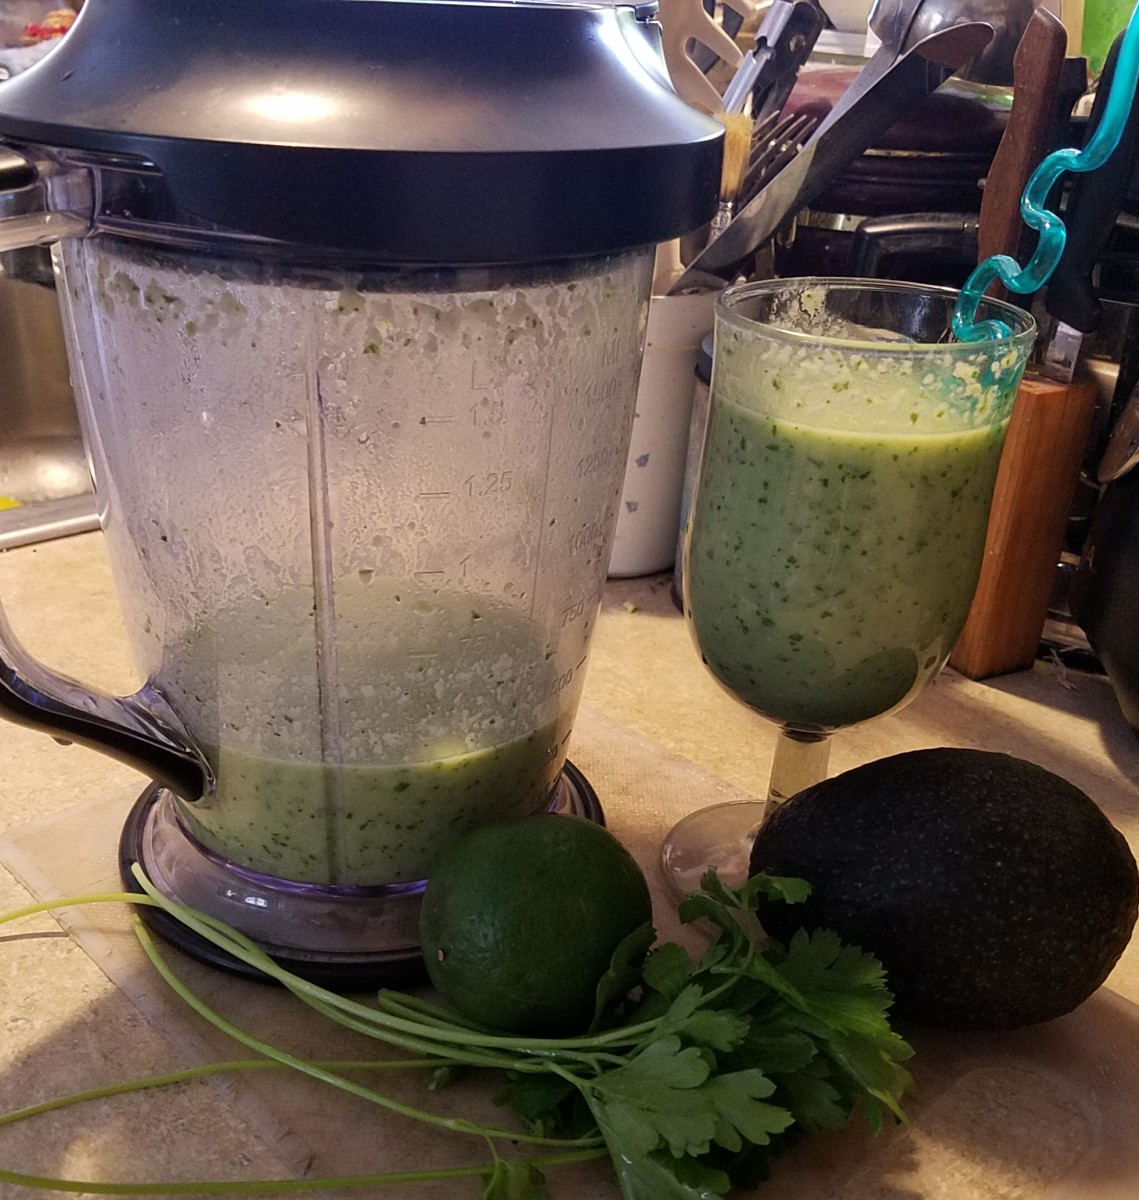 A glass full of this refreshing green smoothie, accompanied by some of the ingredients and the Ninja used to make it.